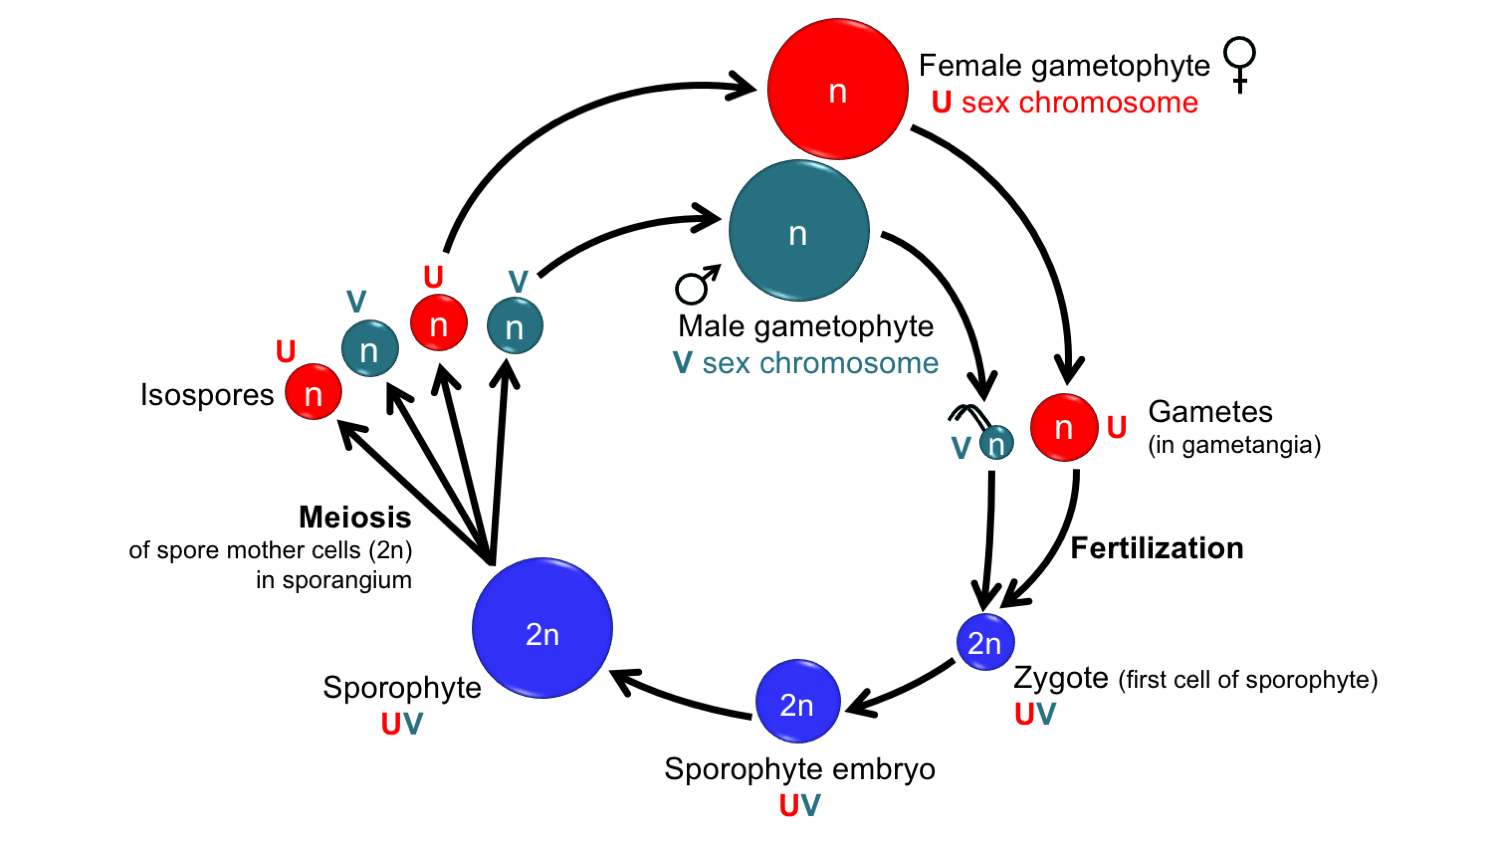 Diagram showing the life cycle of a land plant with unisexual gametophytes and sex chromosomes.